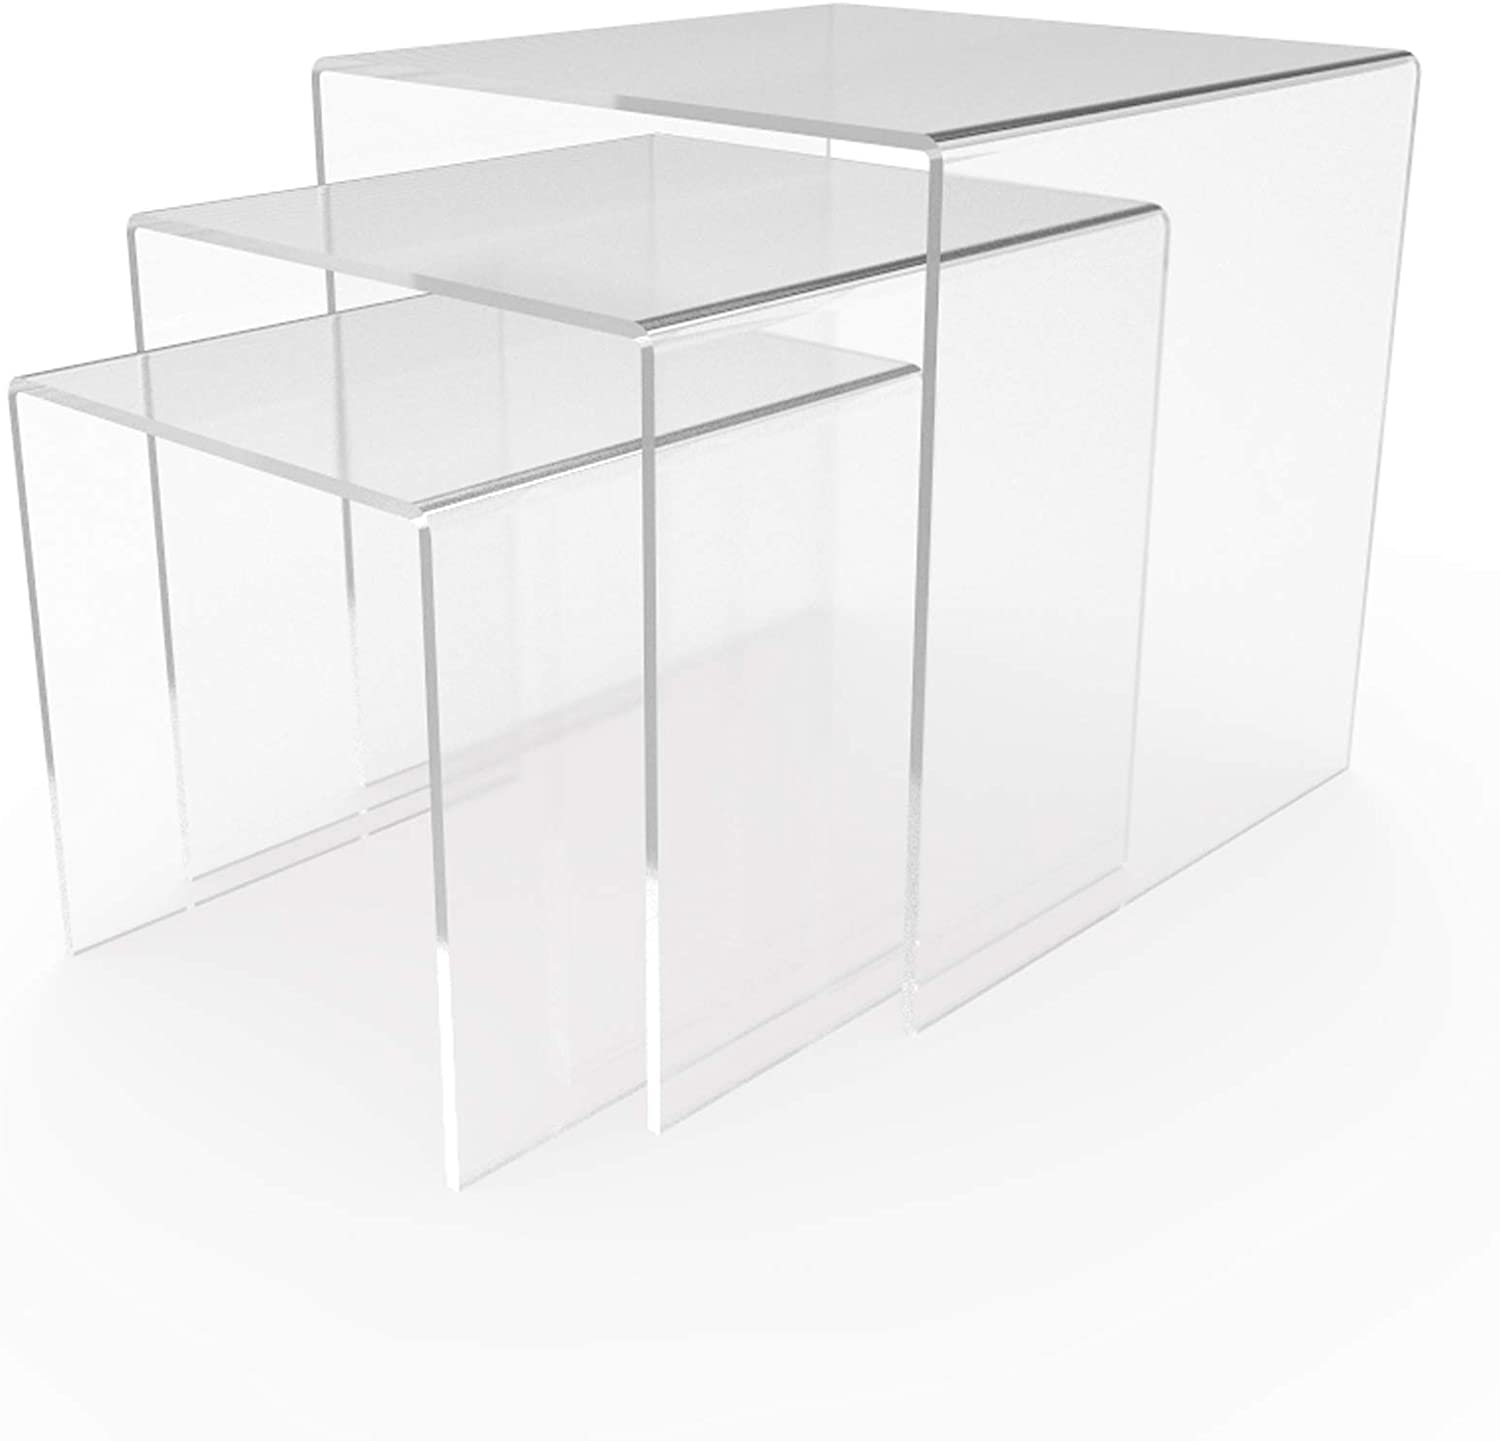 FixtureDisplays 8 Clear Plexiglass Pedestal Lucite Acrylic Display Risers Jewelry Showcase Fixtures 1//8 Thick 16905-8INCH-CLEAR